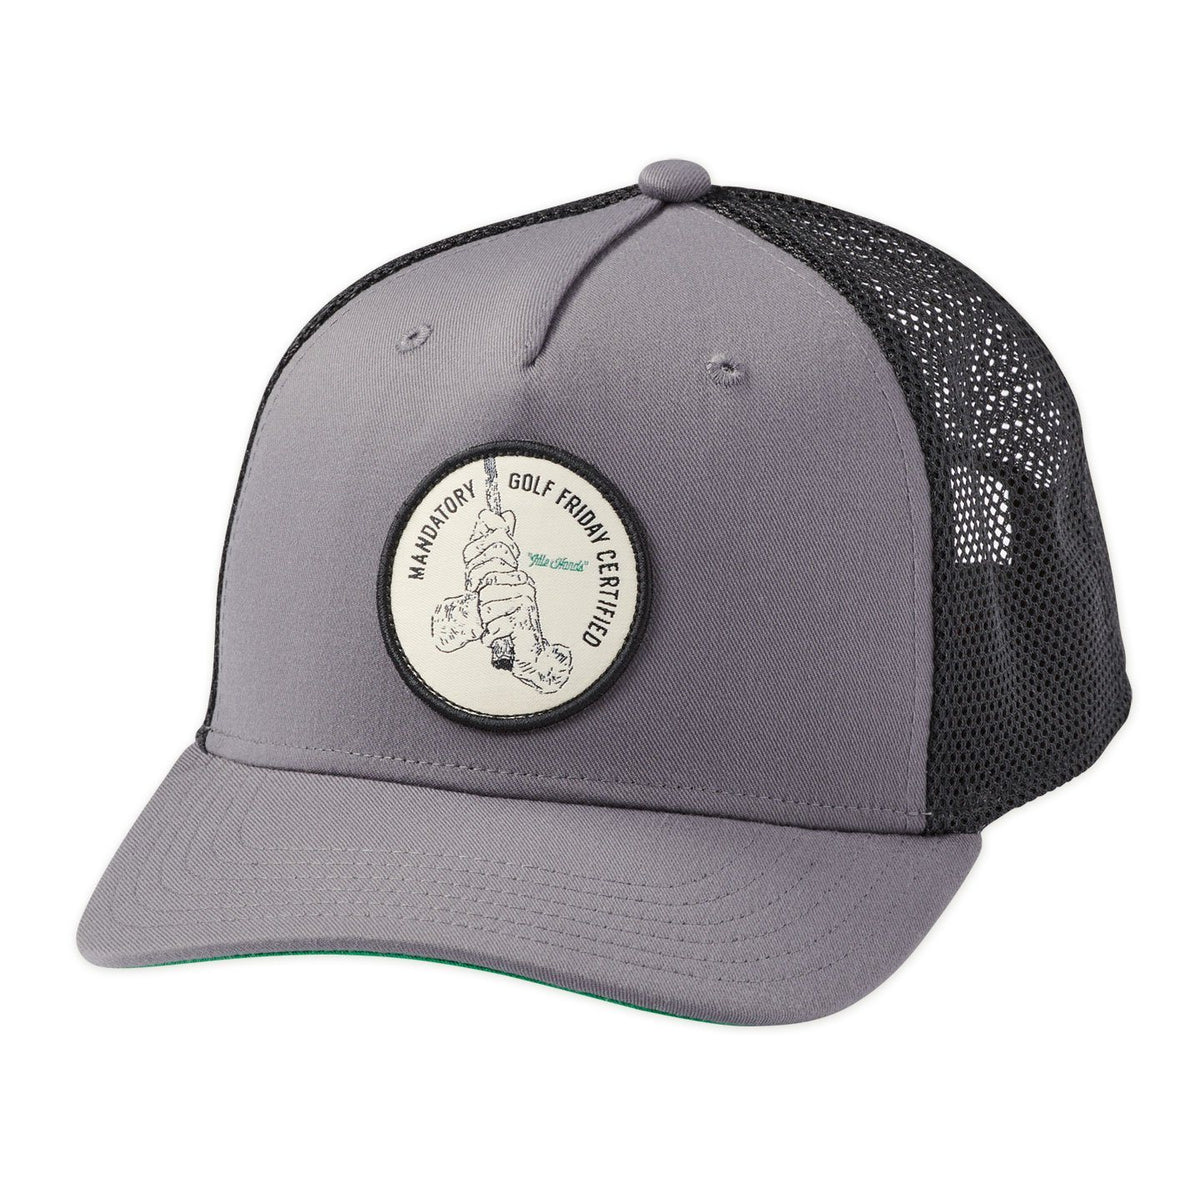 MGF Certified Hat